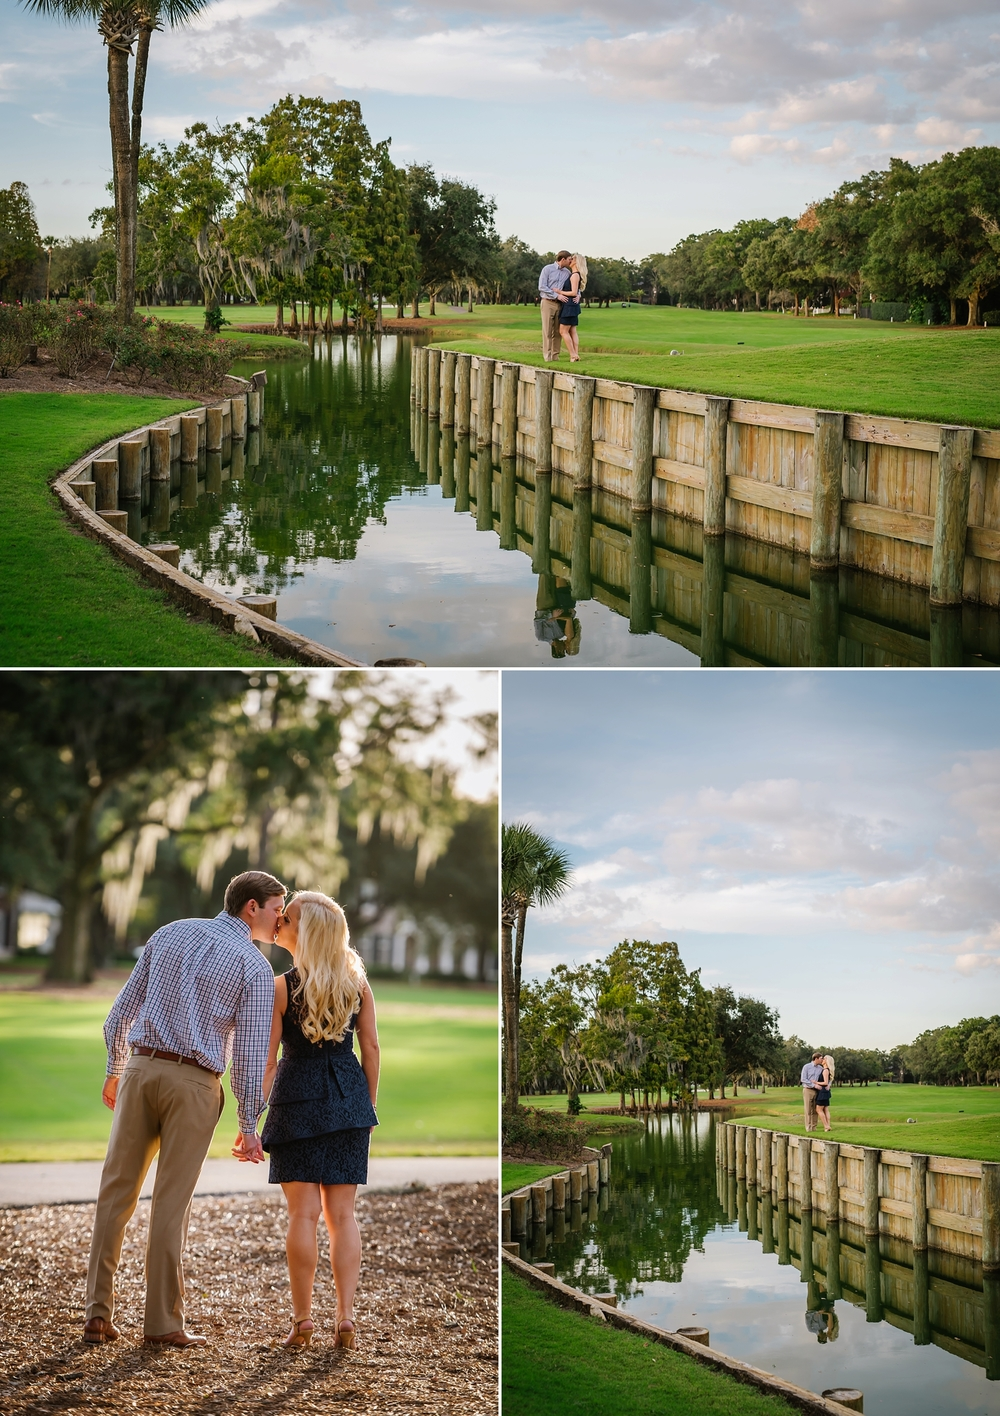 romantic-stylish-elegant-upscale-engagement-photography-ashlee-hamon-tampa_0008.jpg